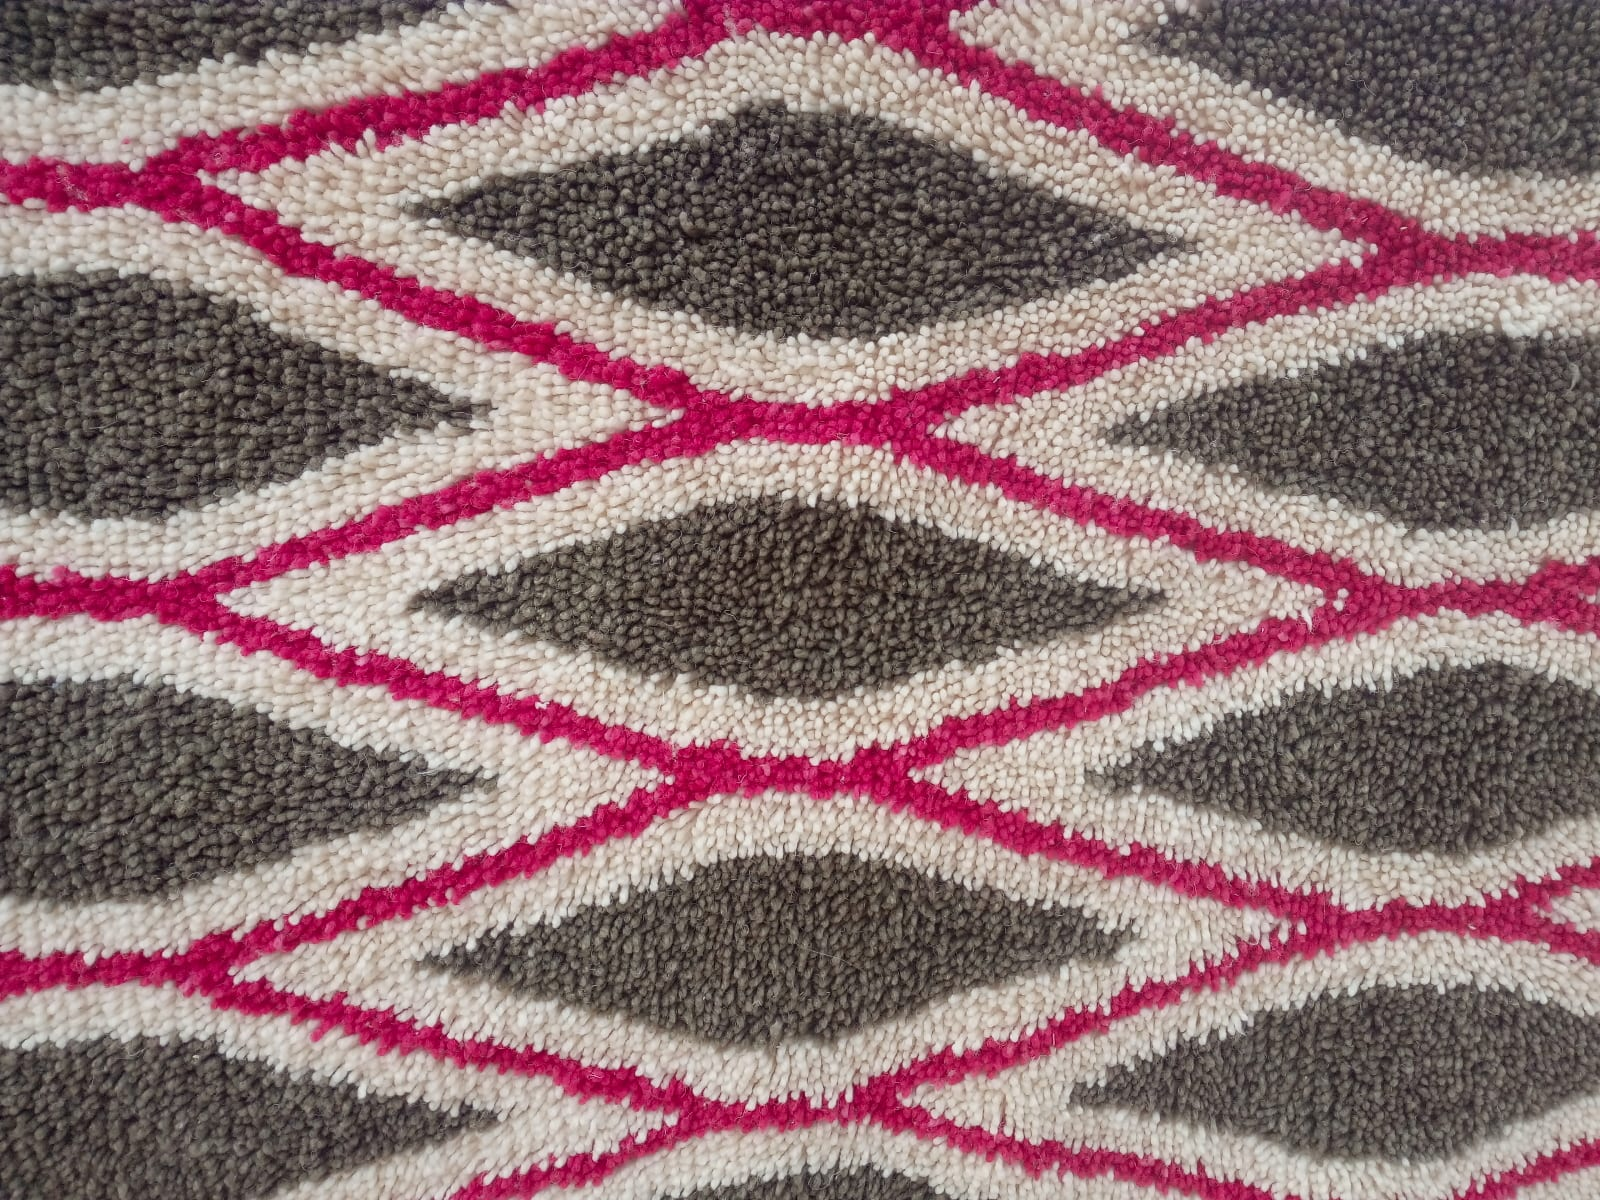 Pile Knot Rug Wool Red, Green Morocco